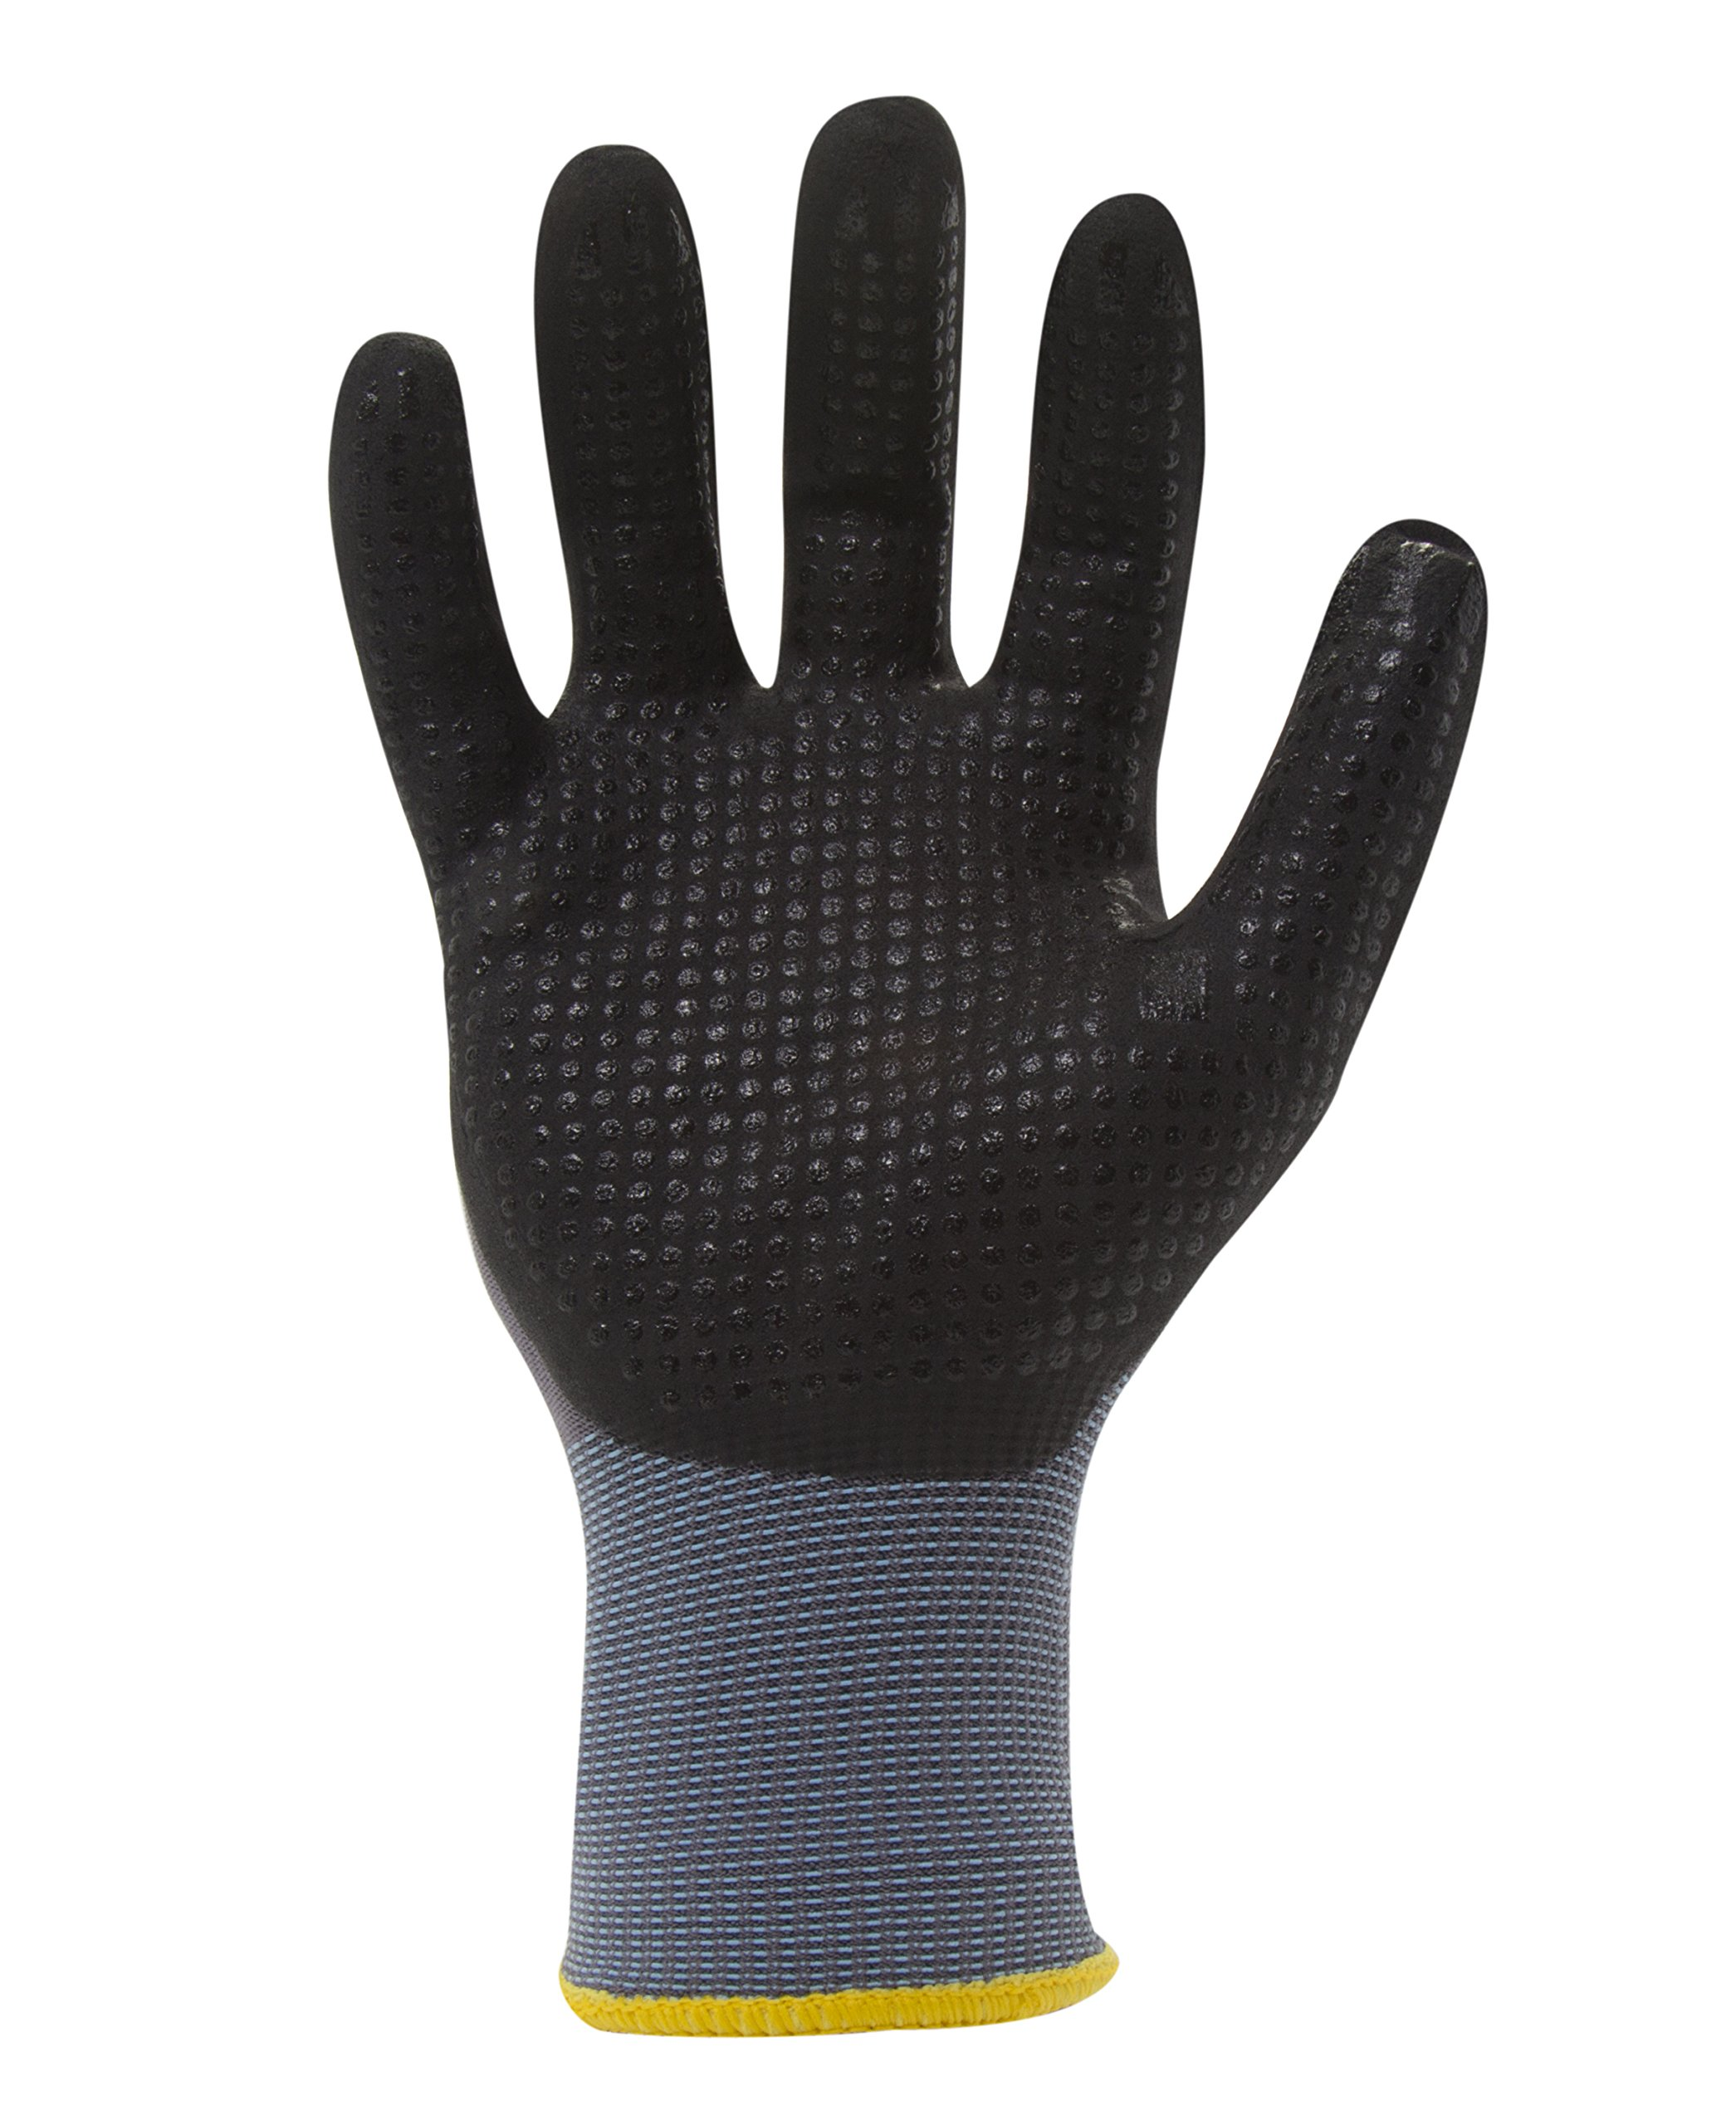 212 Performance Gloves AXDG-16-011 AX360 Dotted Grip Nitrile-dipped Work Glove, 12-Pair Bulk Pack, X-Large by 215 Performance Gloves (Image #3)